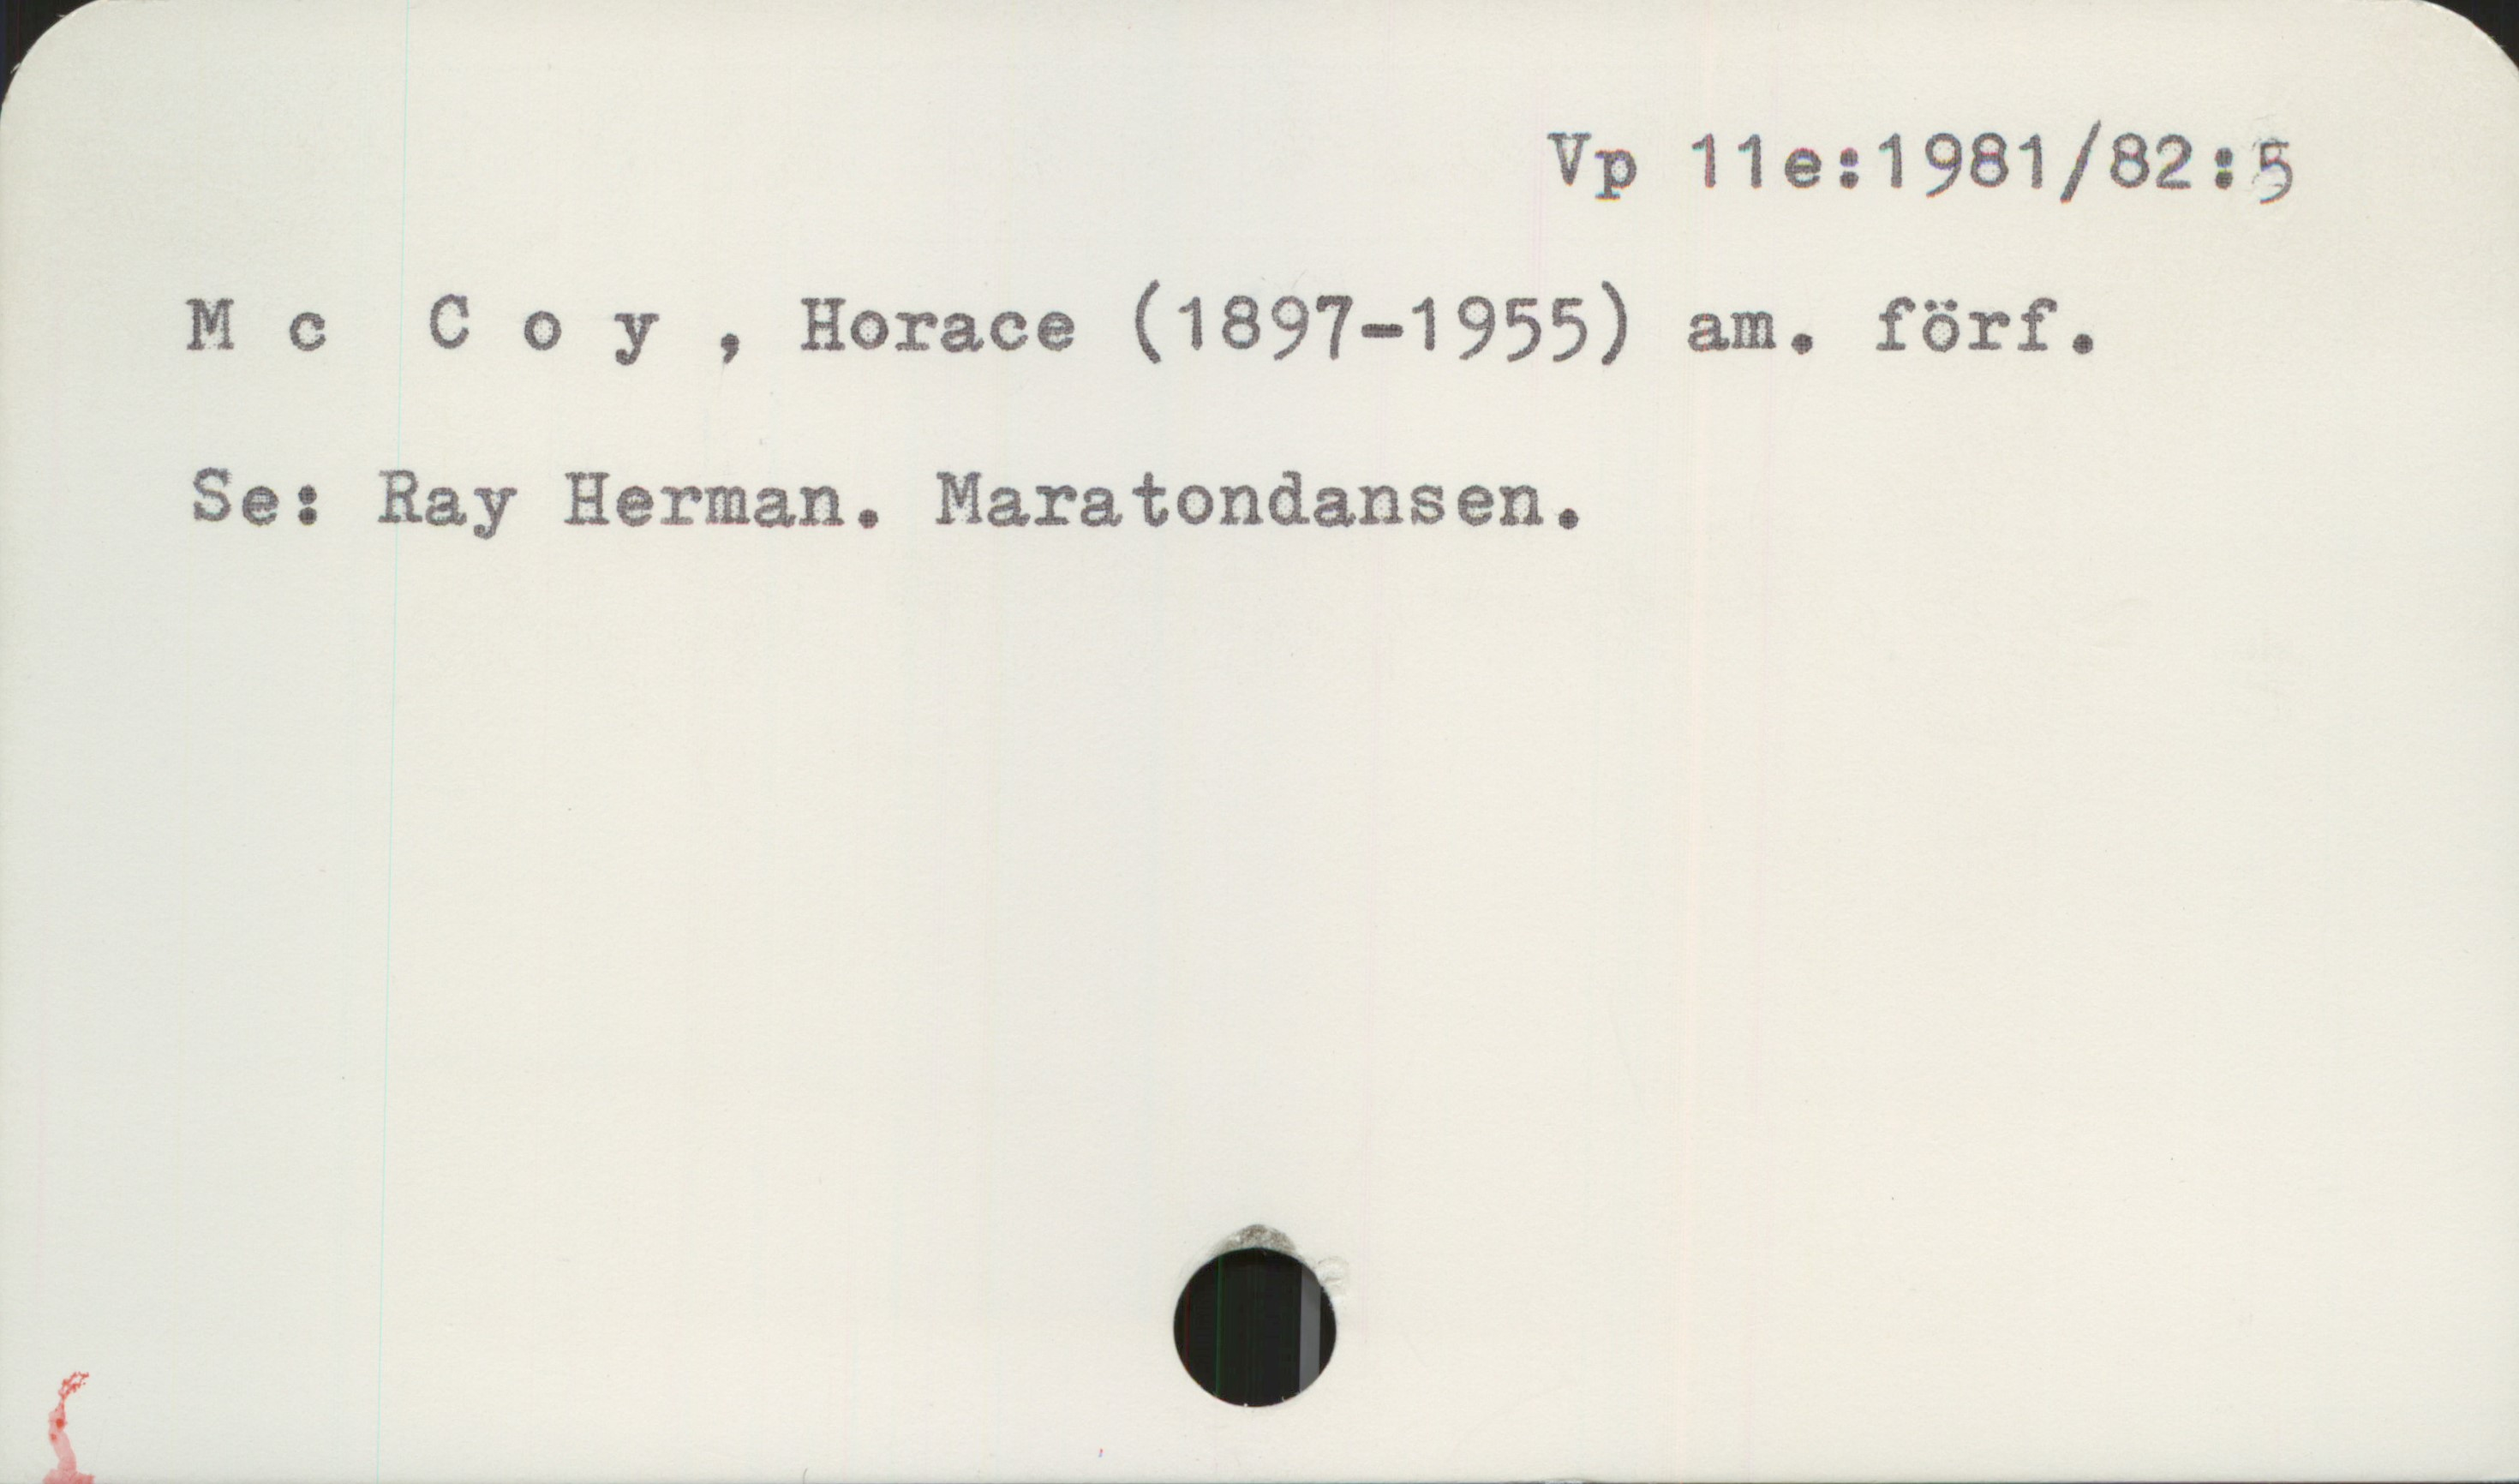 McCoy, Horace (1897-1955) am. förf. Vp 11e:1981/82 : 5